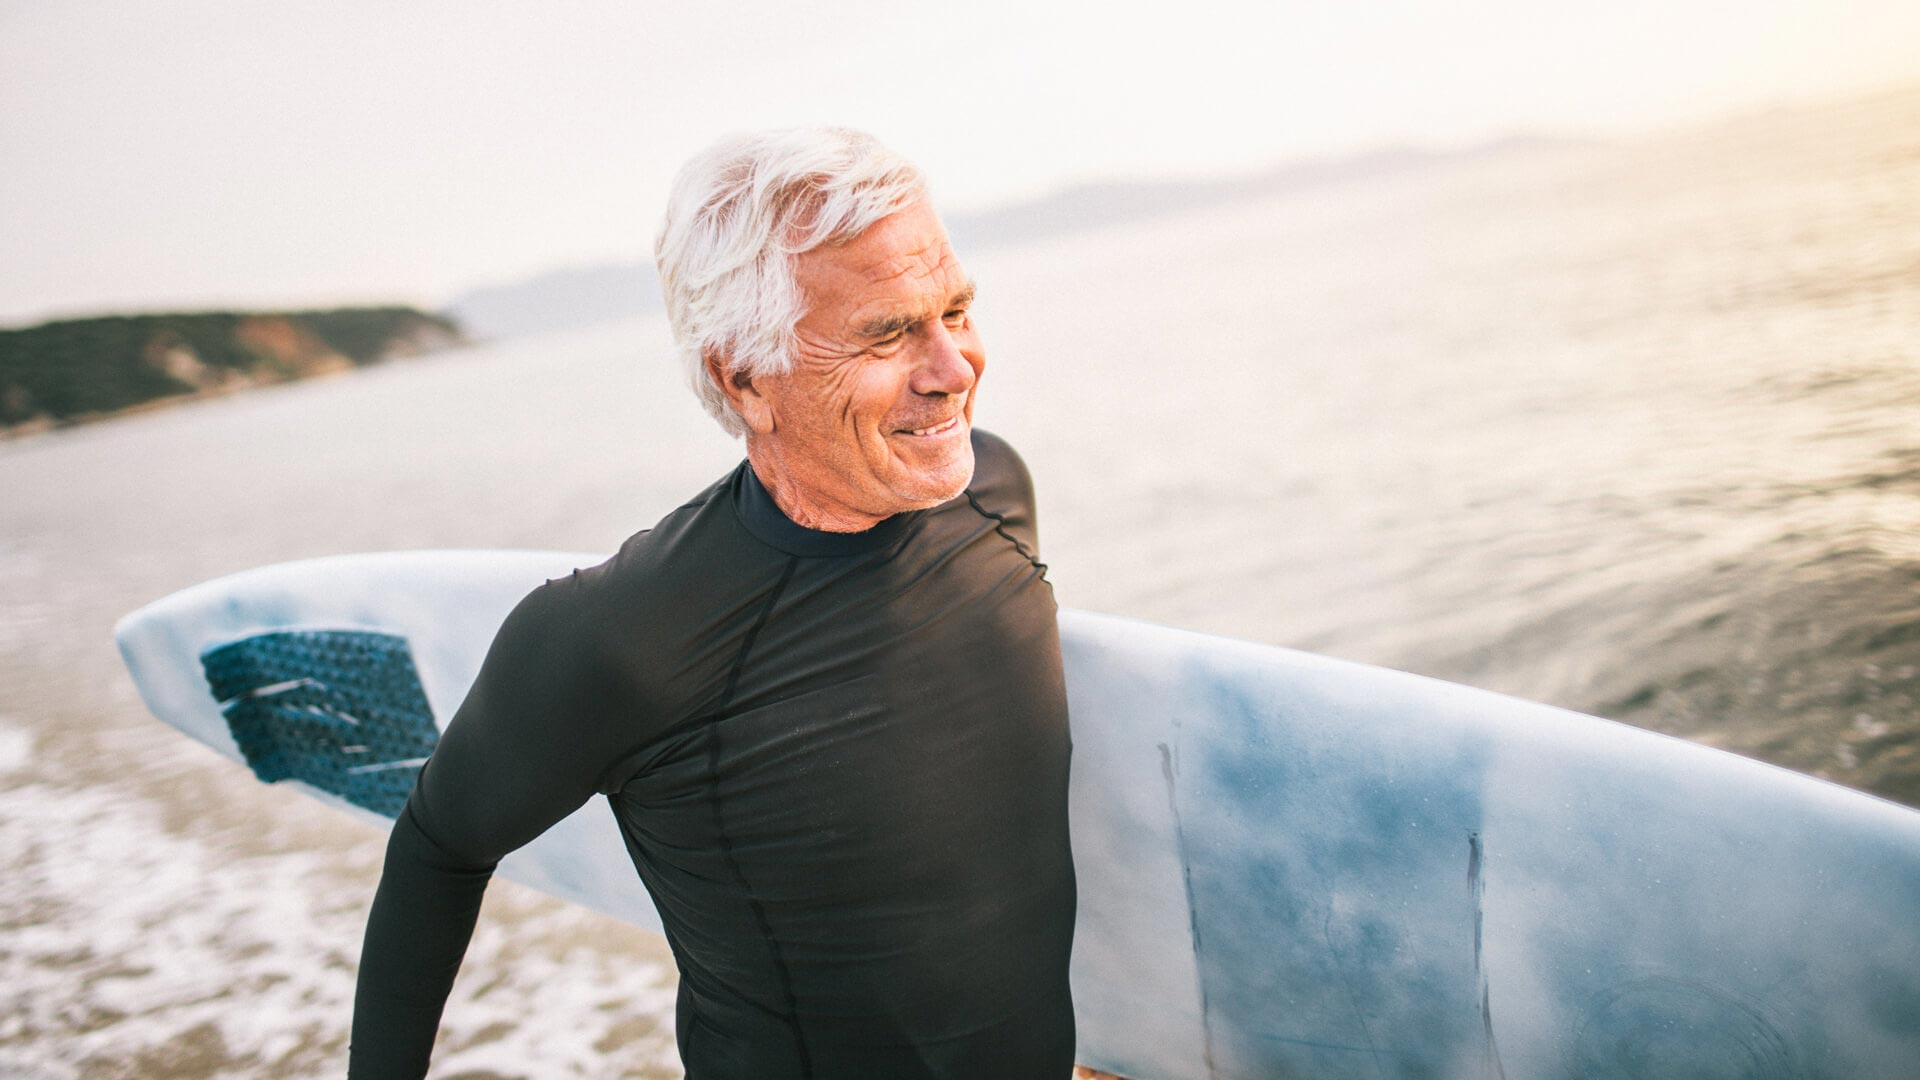 A senior man going surfing at the beach